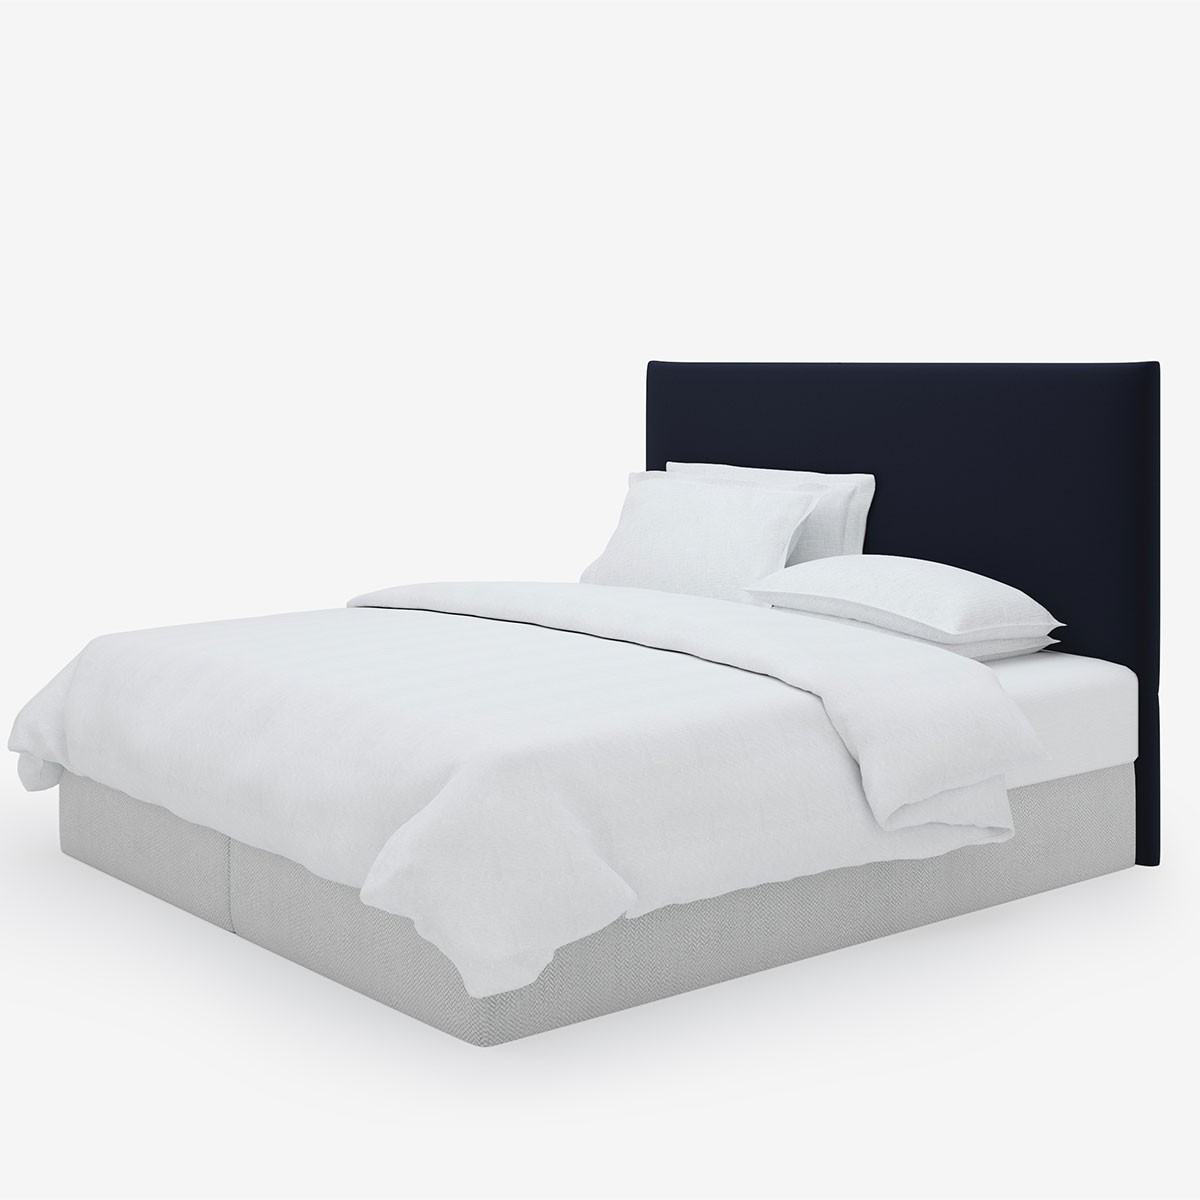 Image shows Simply Tailored Super King Headboard in Relaxed Wool Midnight Blue